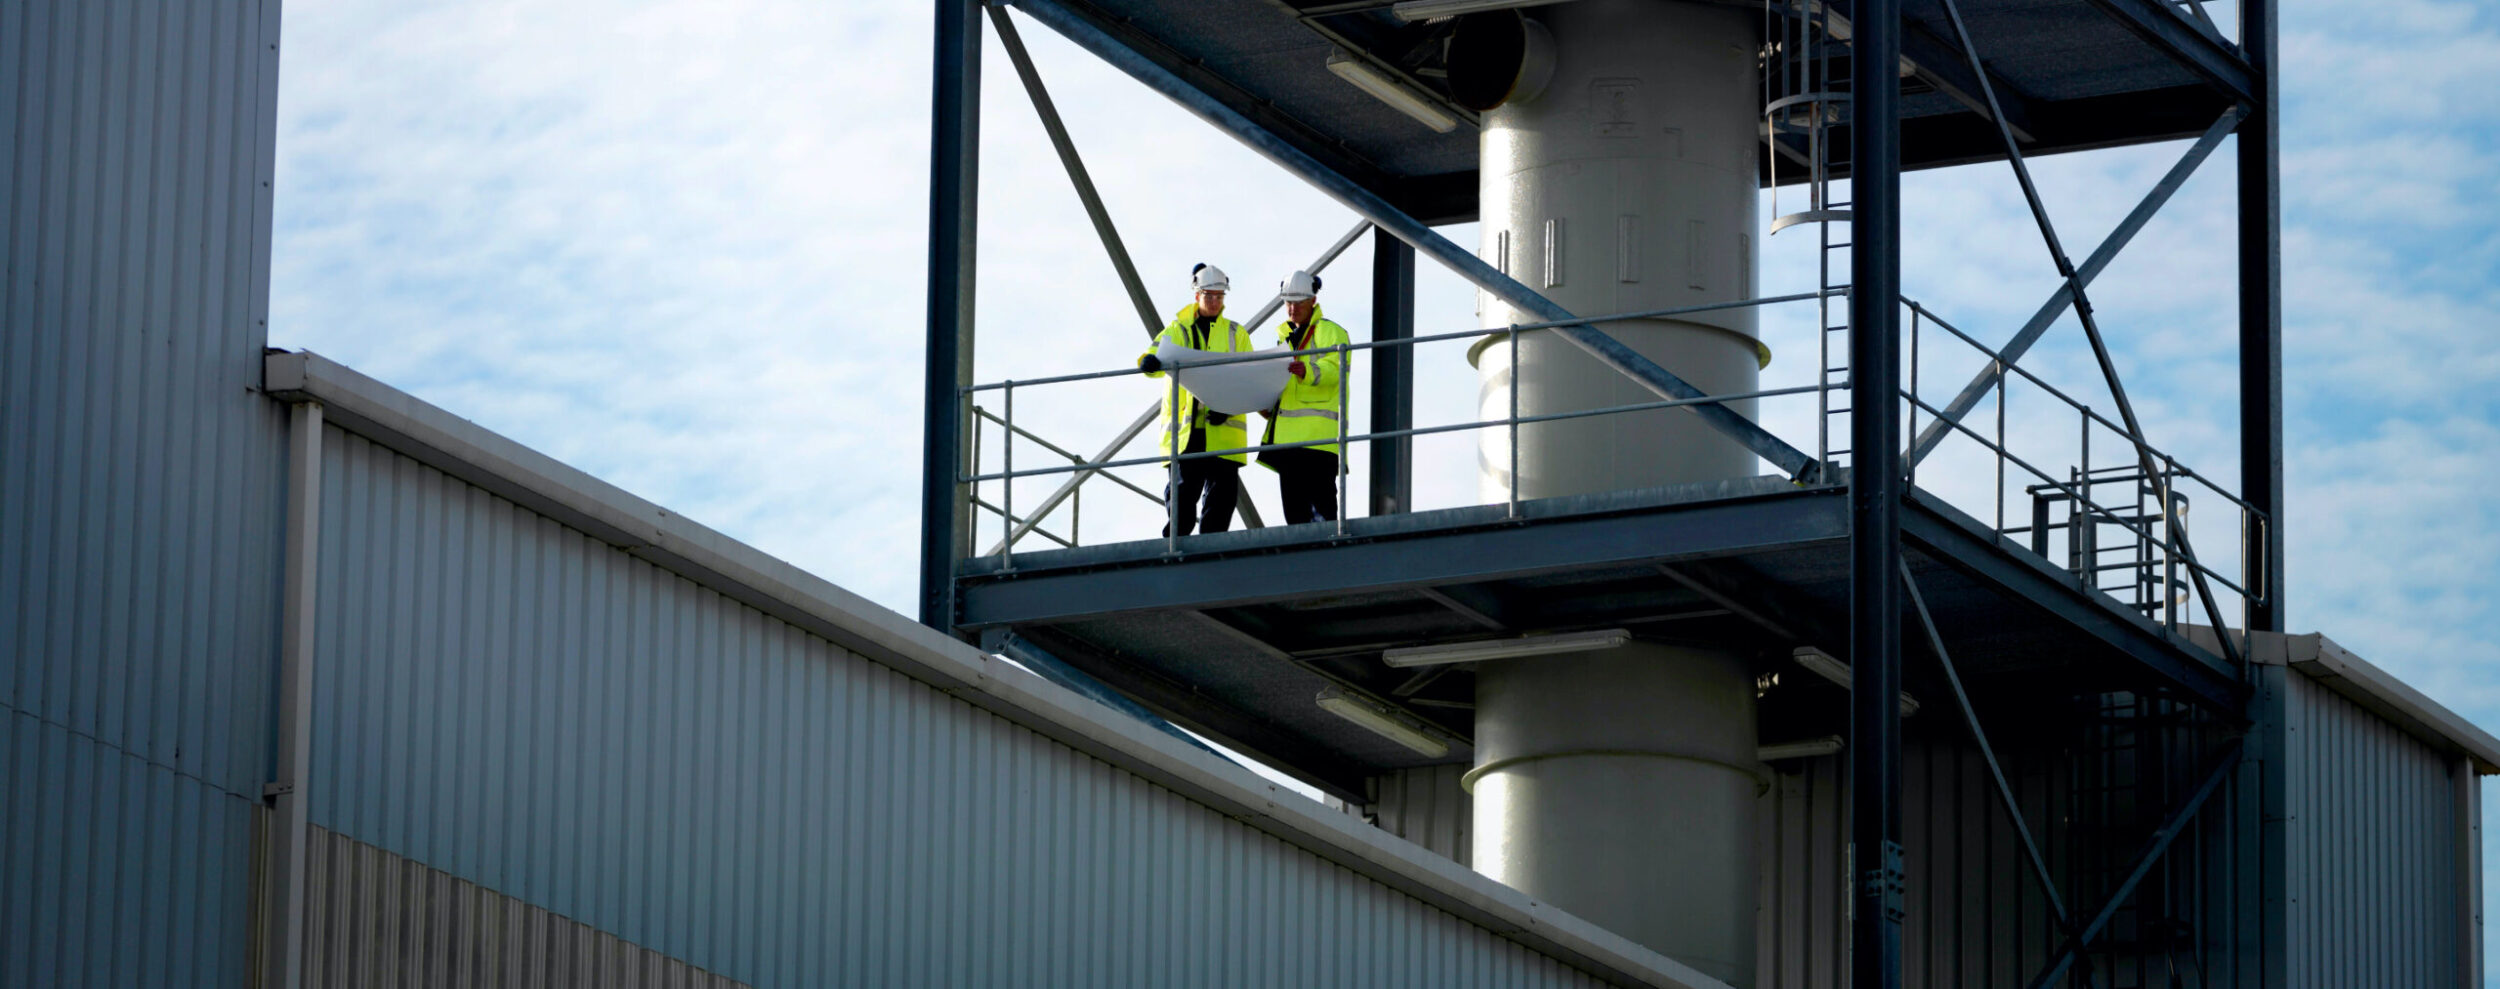 Facility employees on an inspection platform